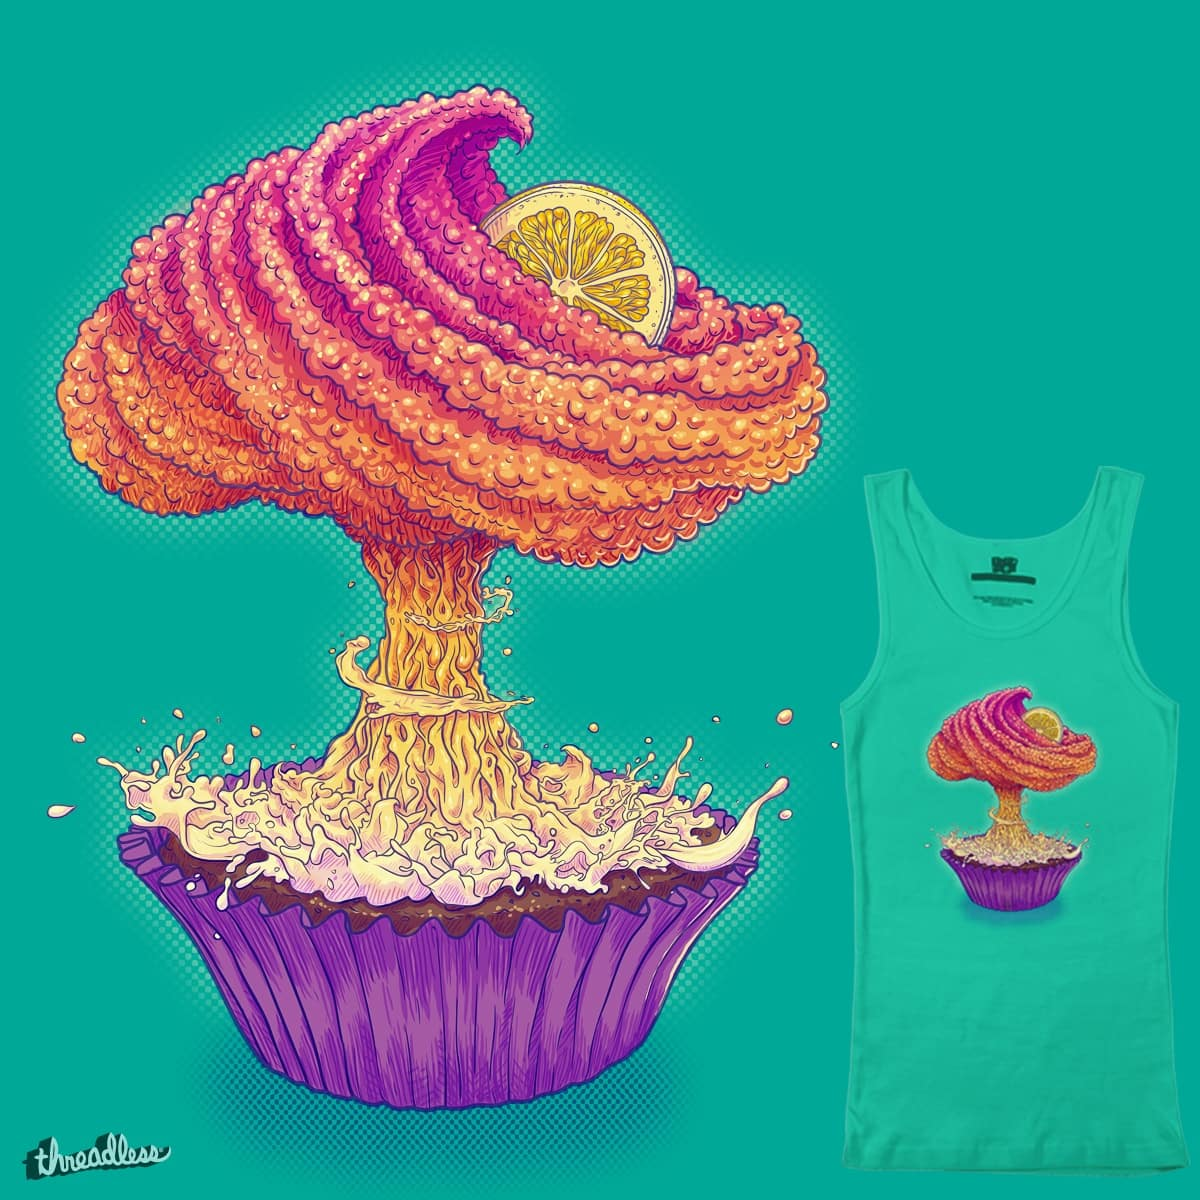 Mushroom Cupcake by MvonSchwarze on Threadless